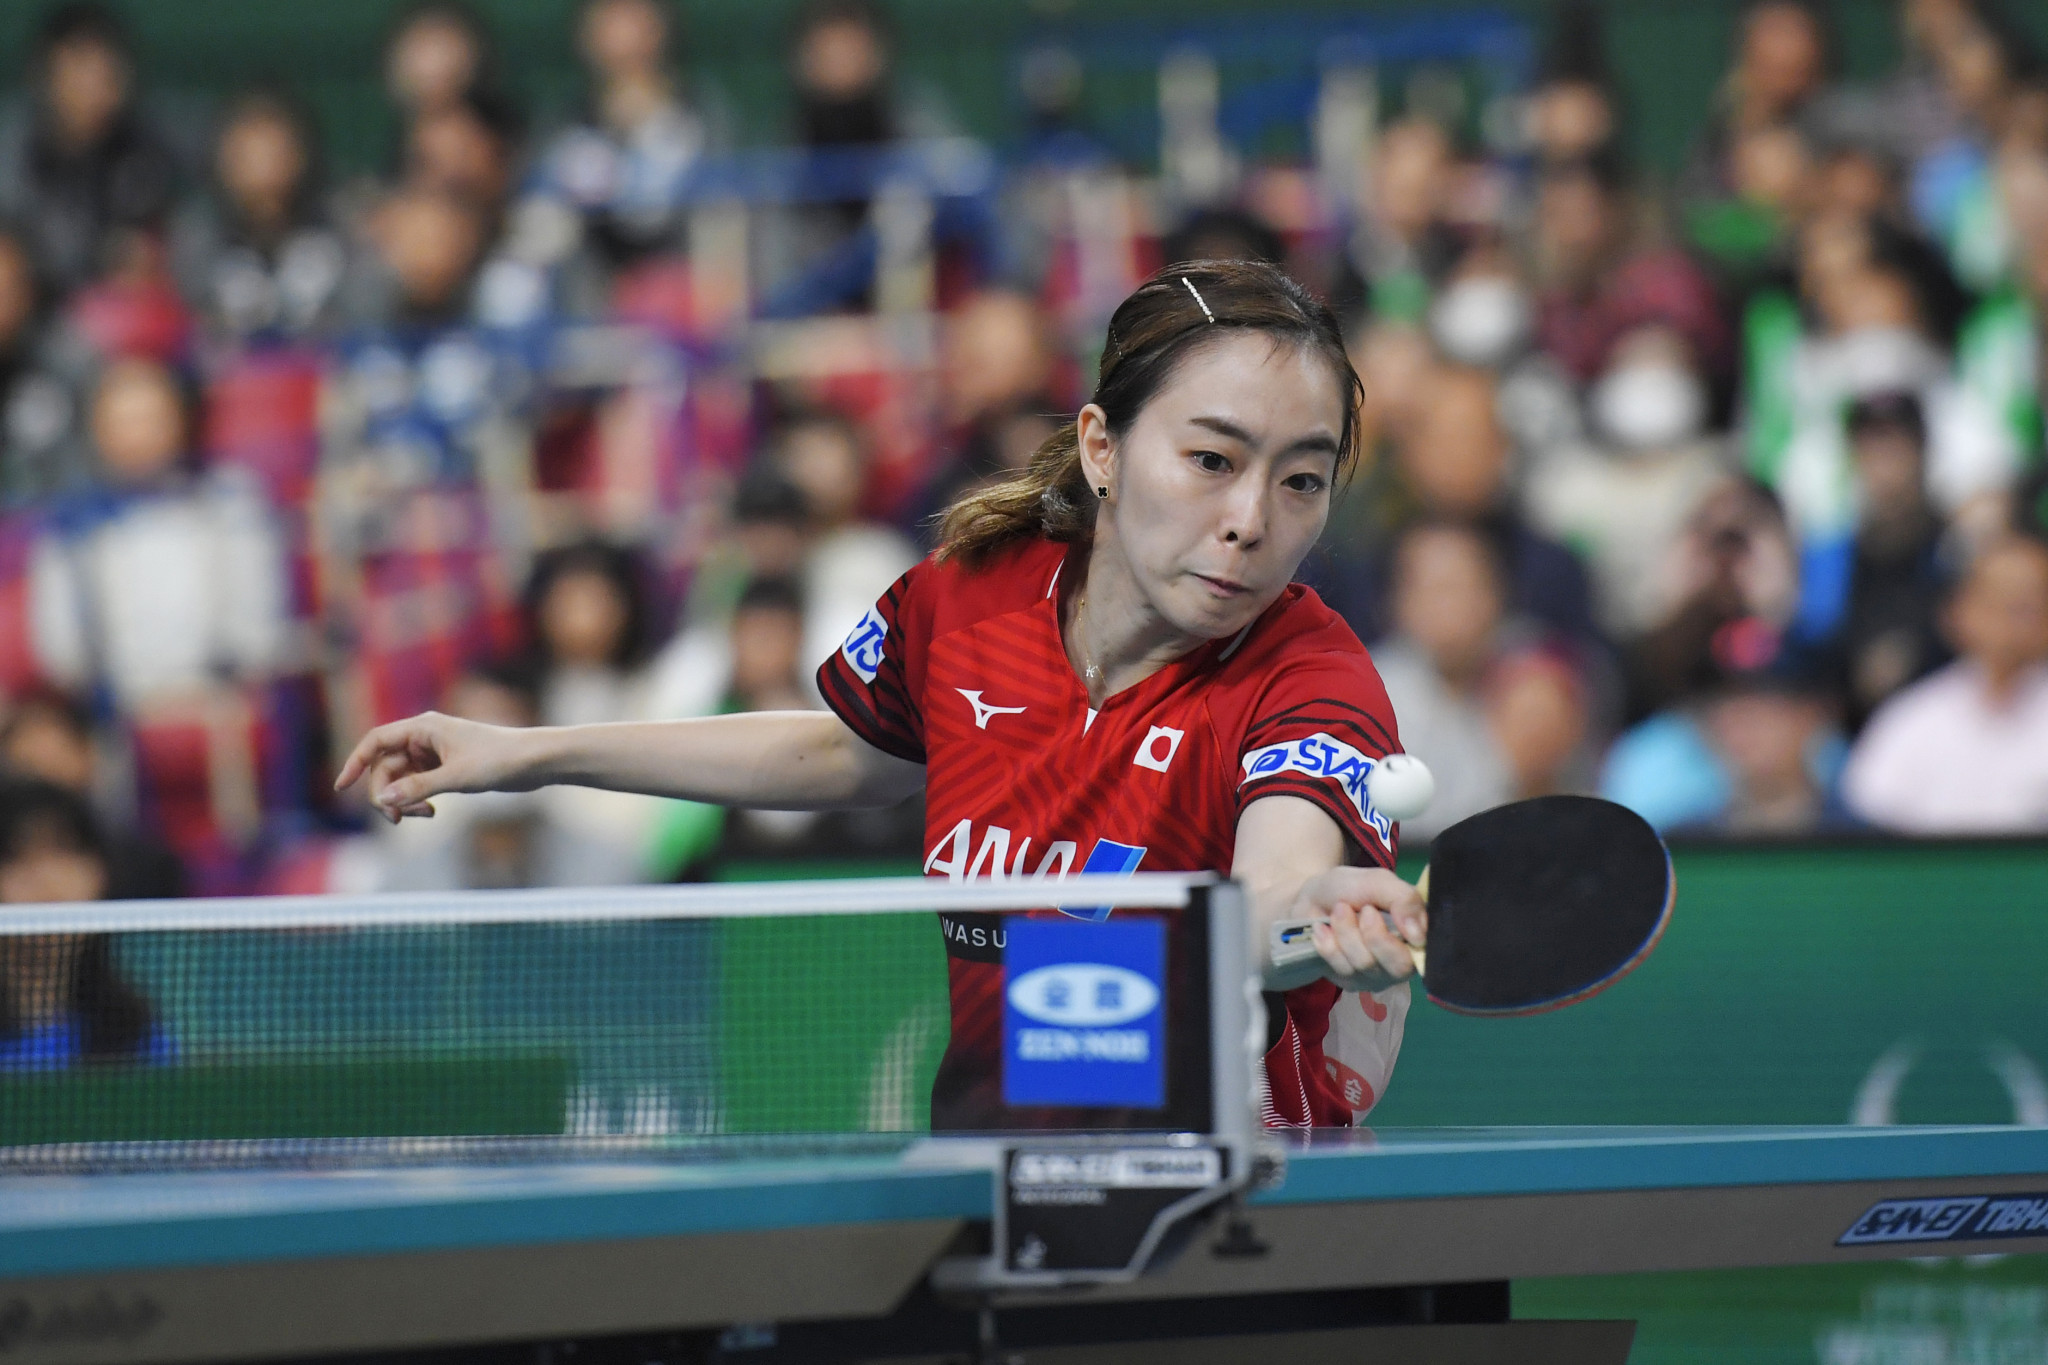 Two-time Olympic medallist Ishikawa Kasumi also played at the tournament ©Getty Images